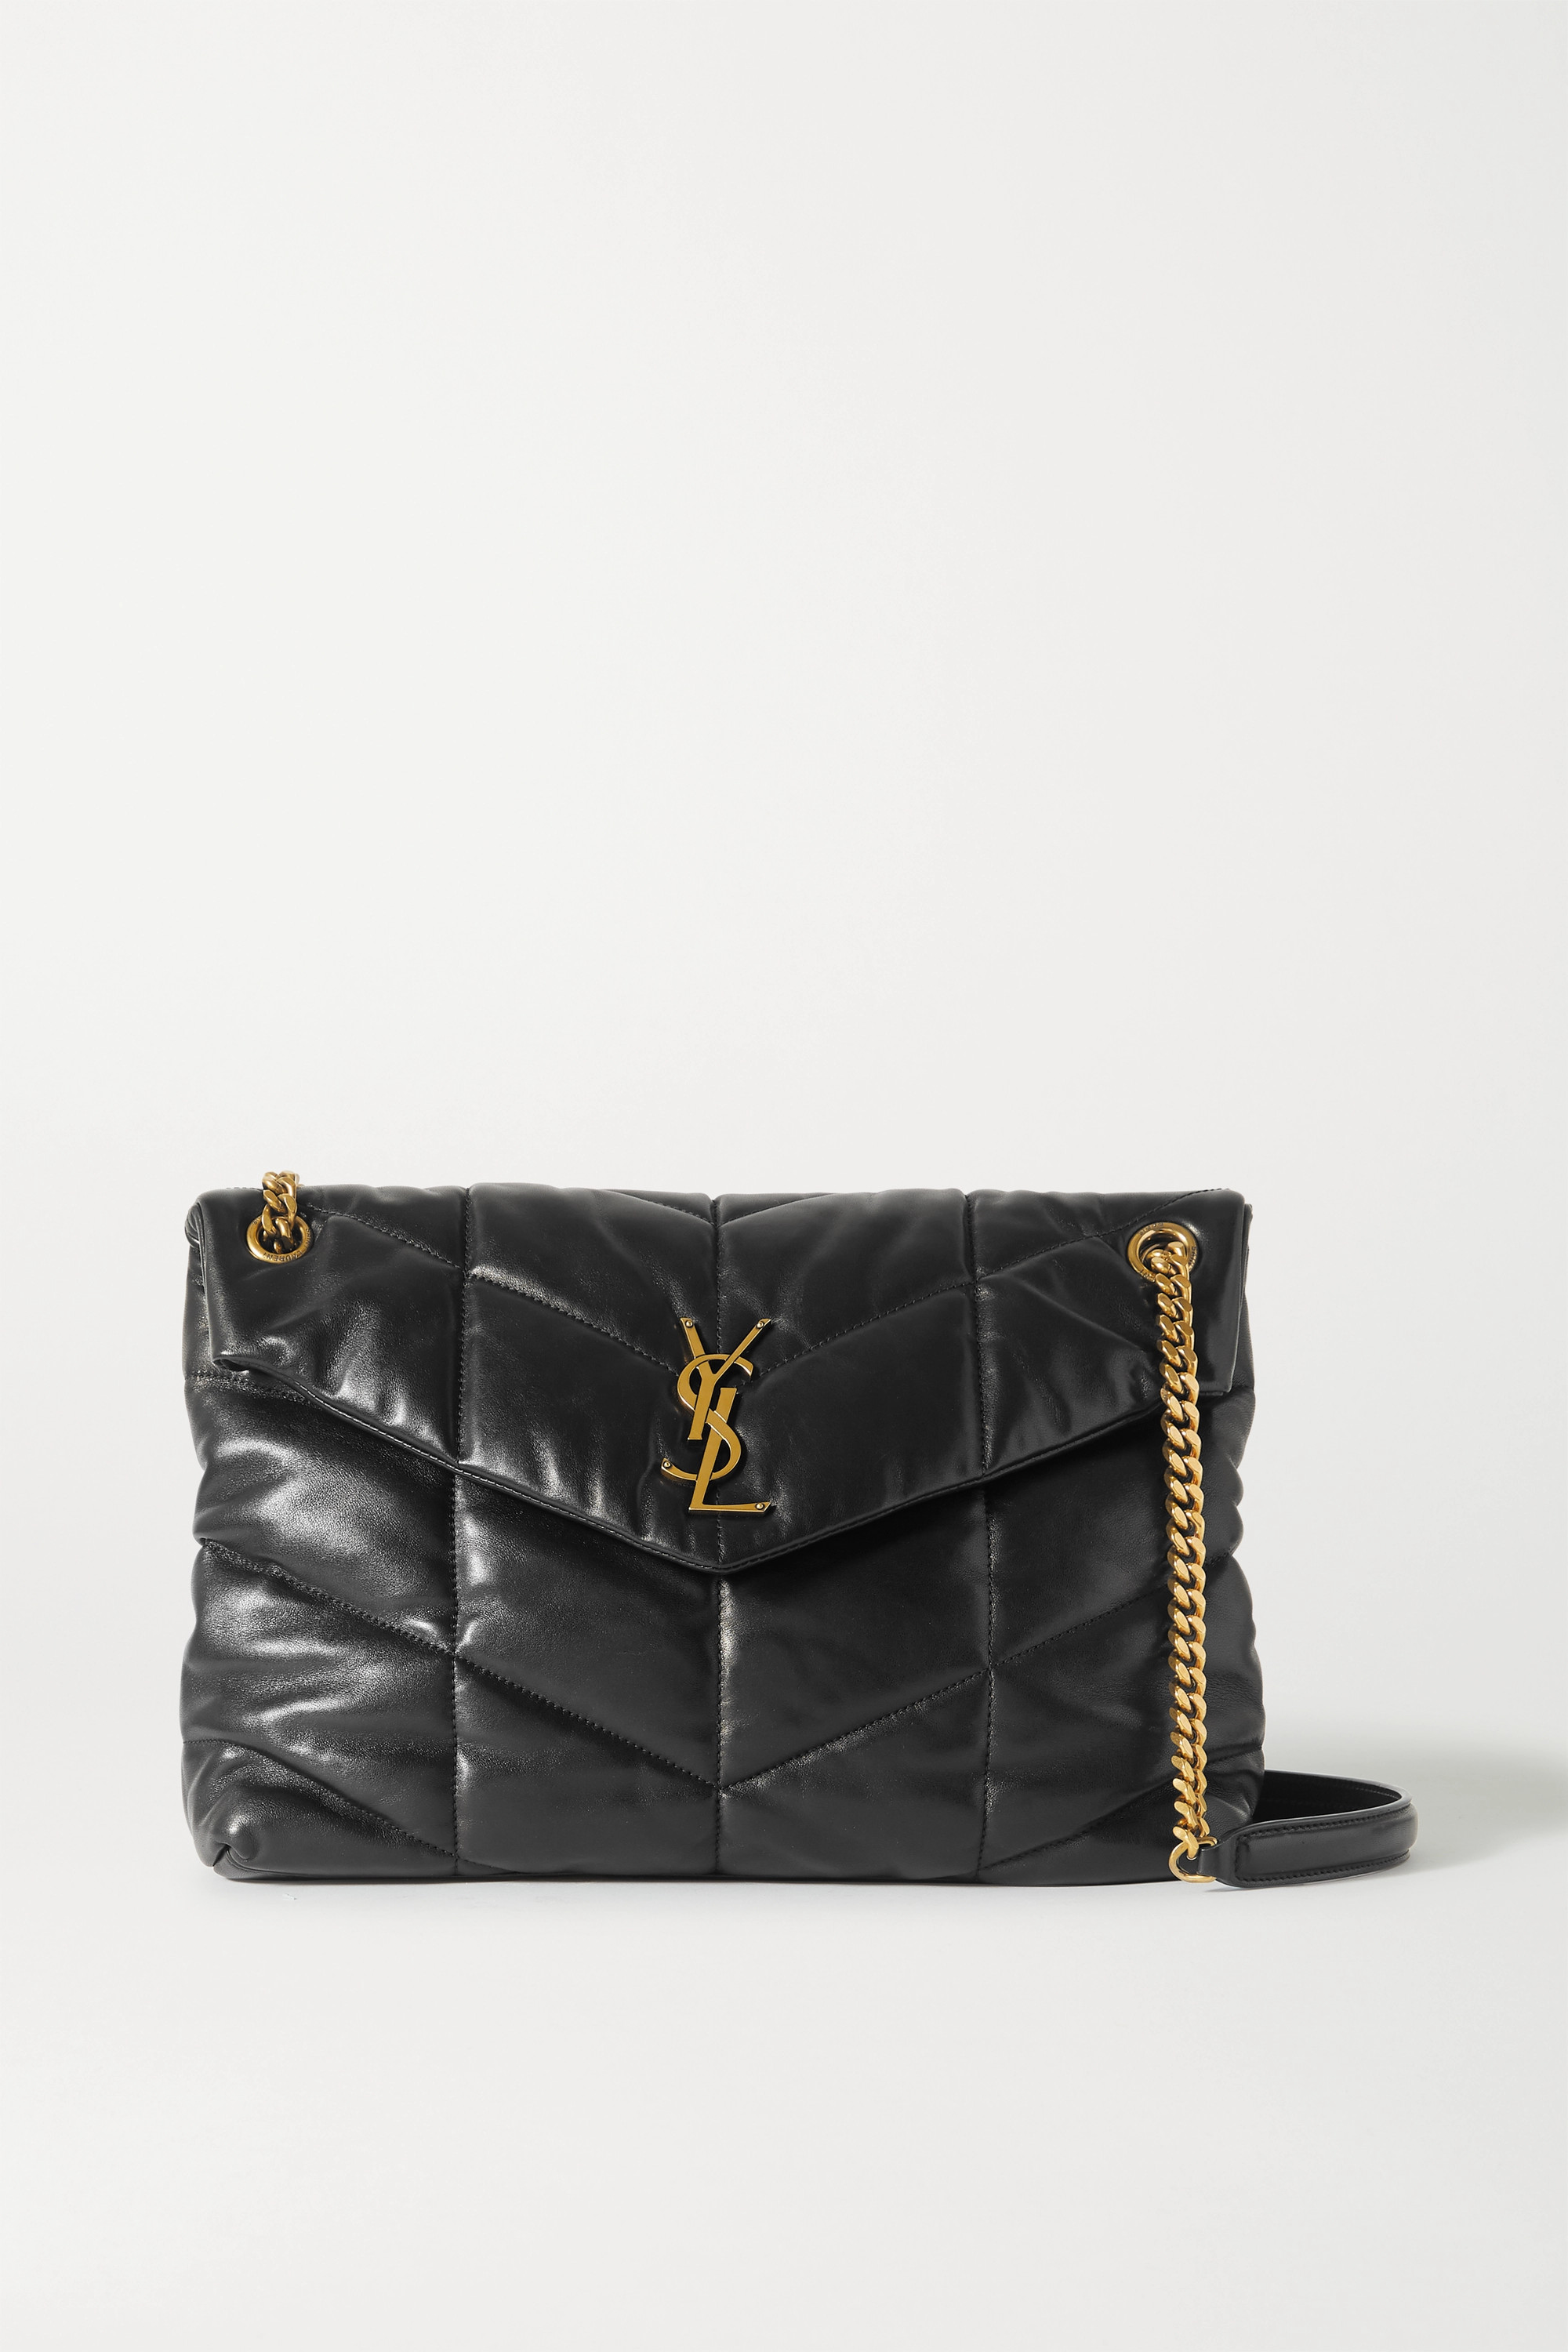 SAINT LAURENT - Loulou Puffer medium quilted leather shoulder bag